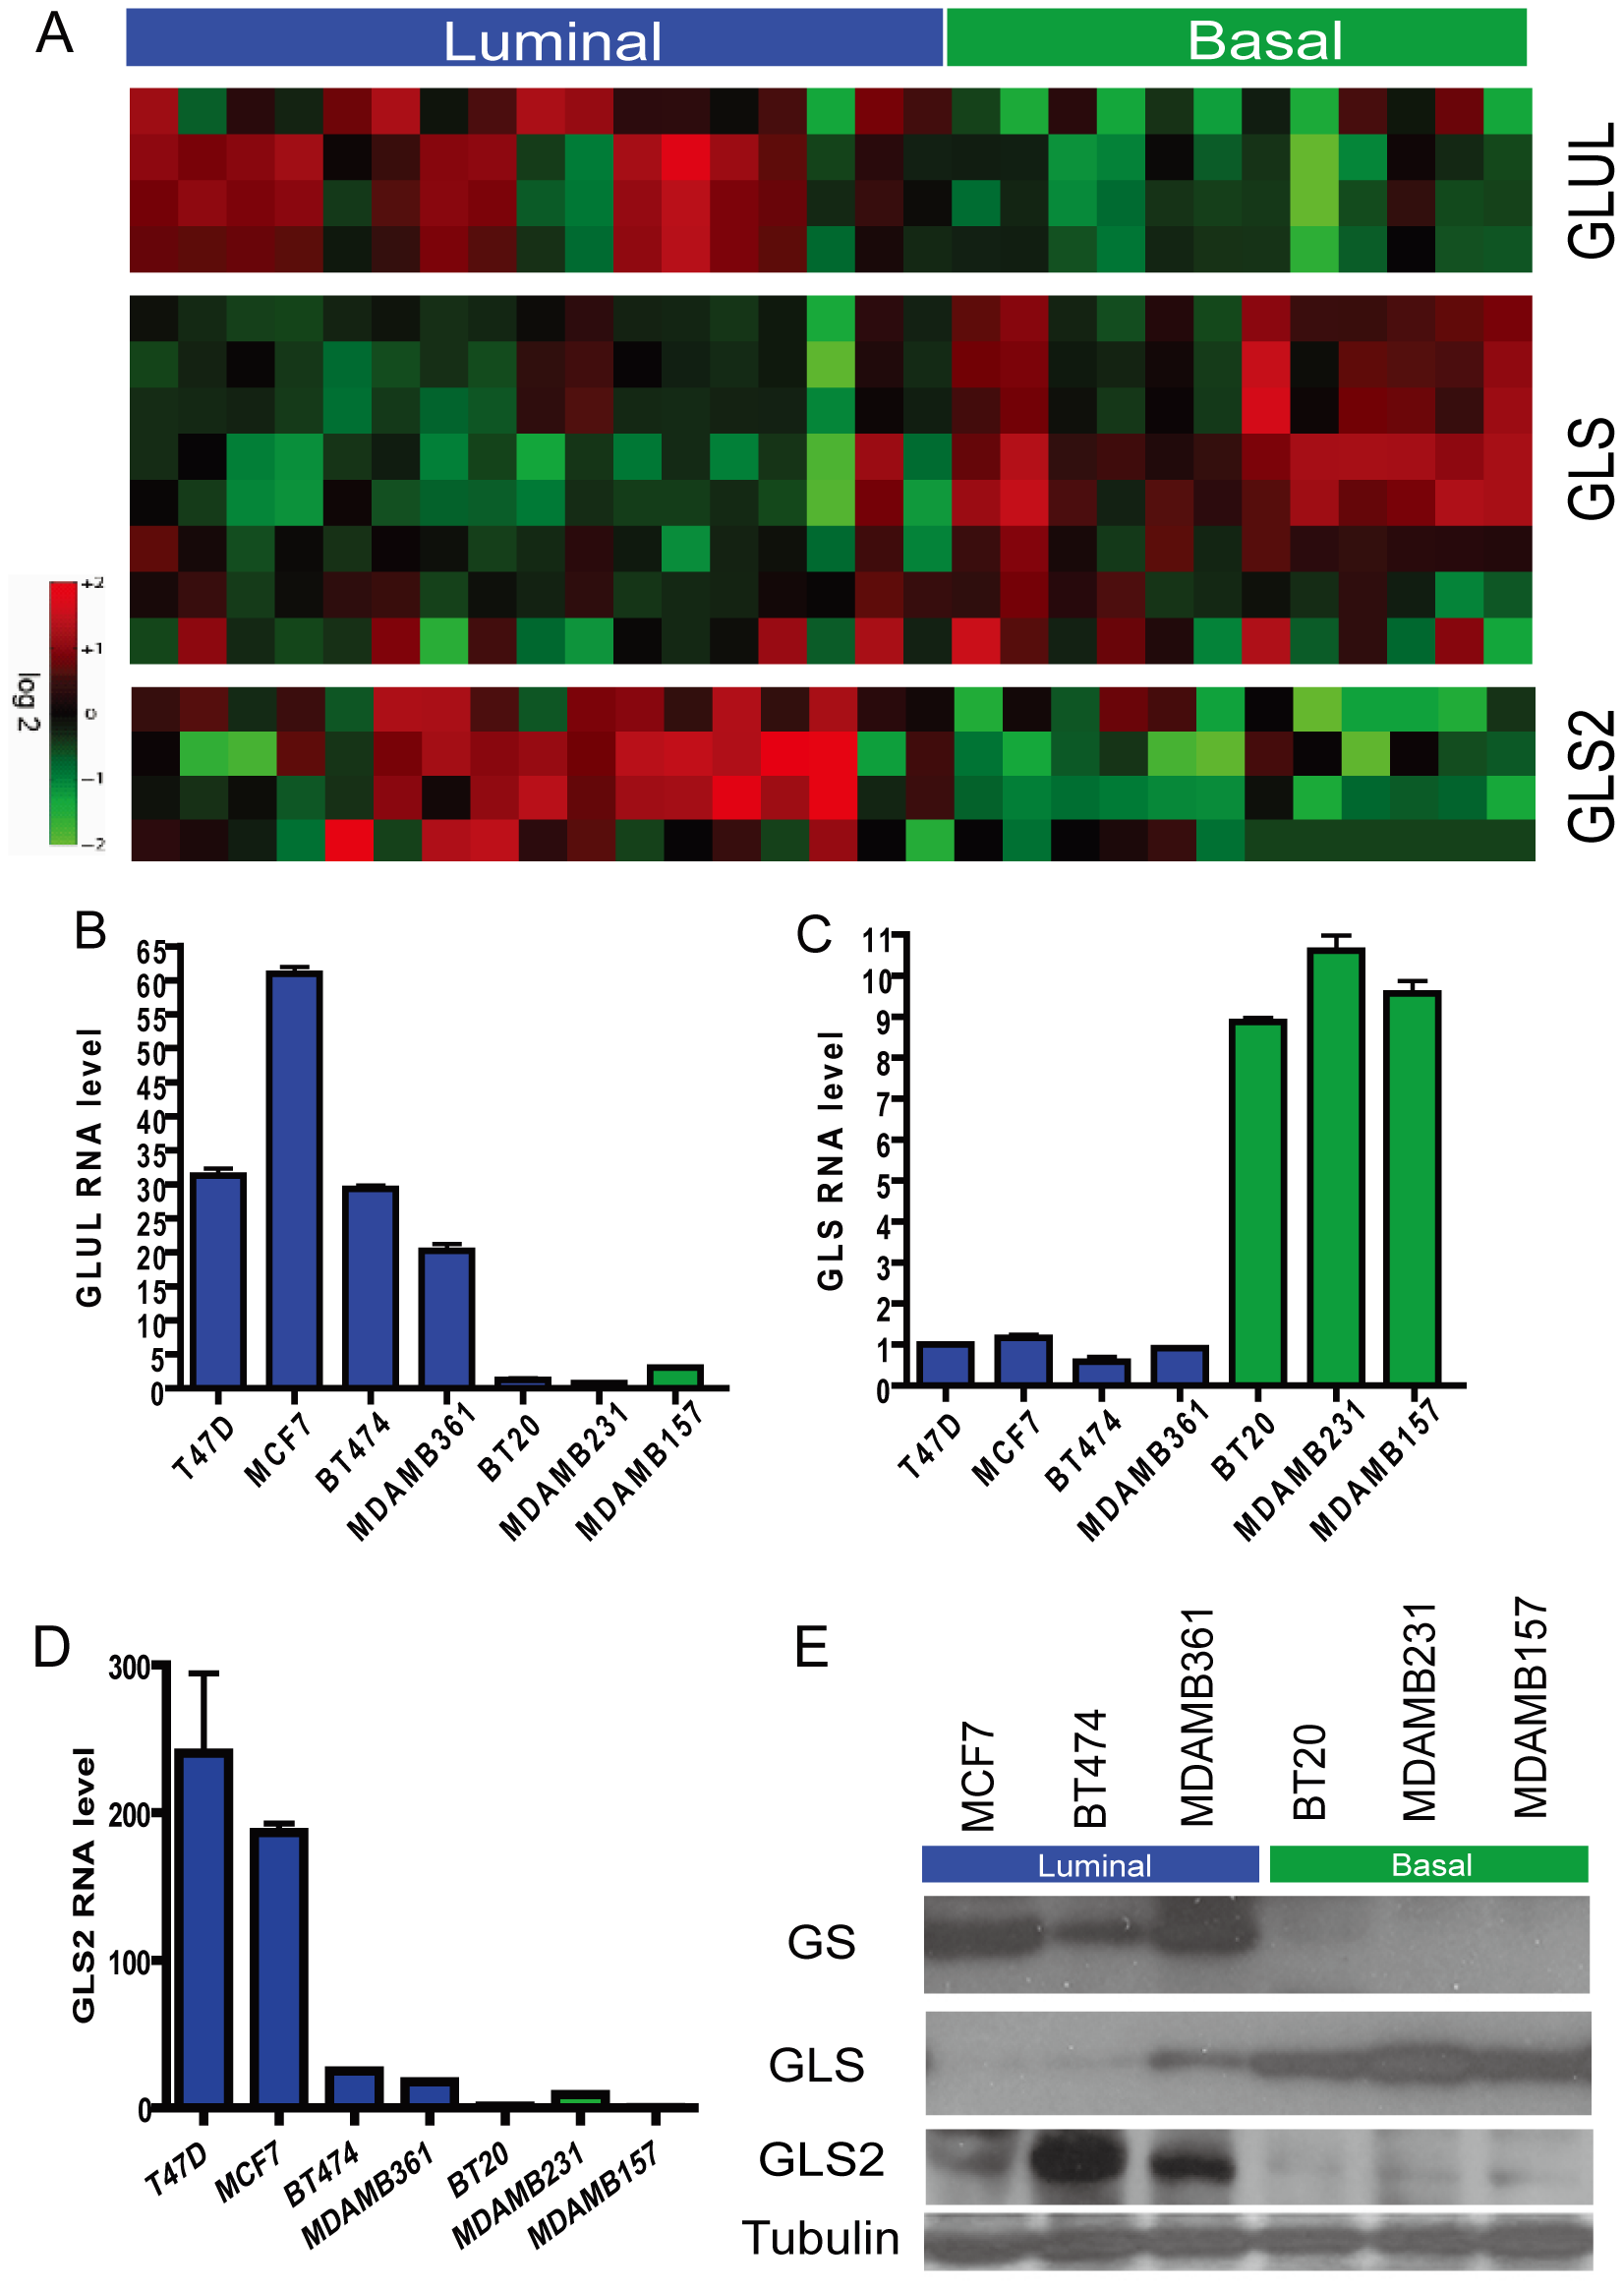 Differential expression of genes encoding glutamine-metabolizing enzymes in the basal and luminal breast cancer cell lines.